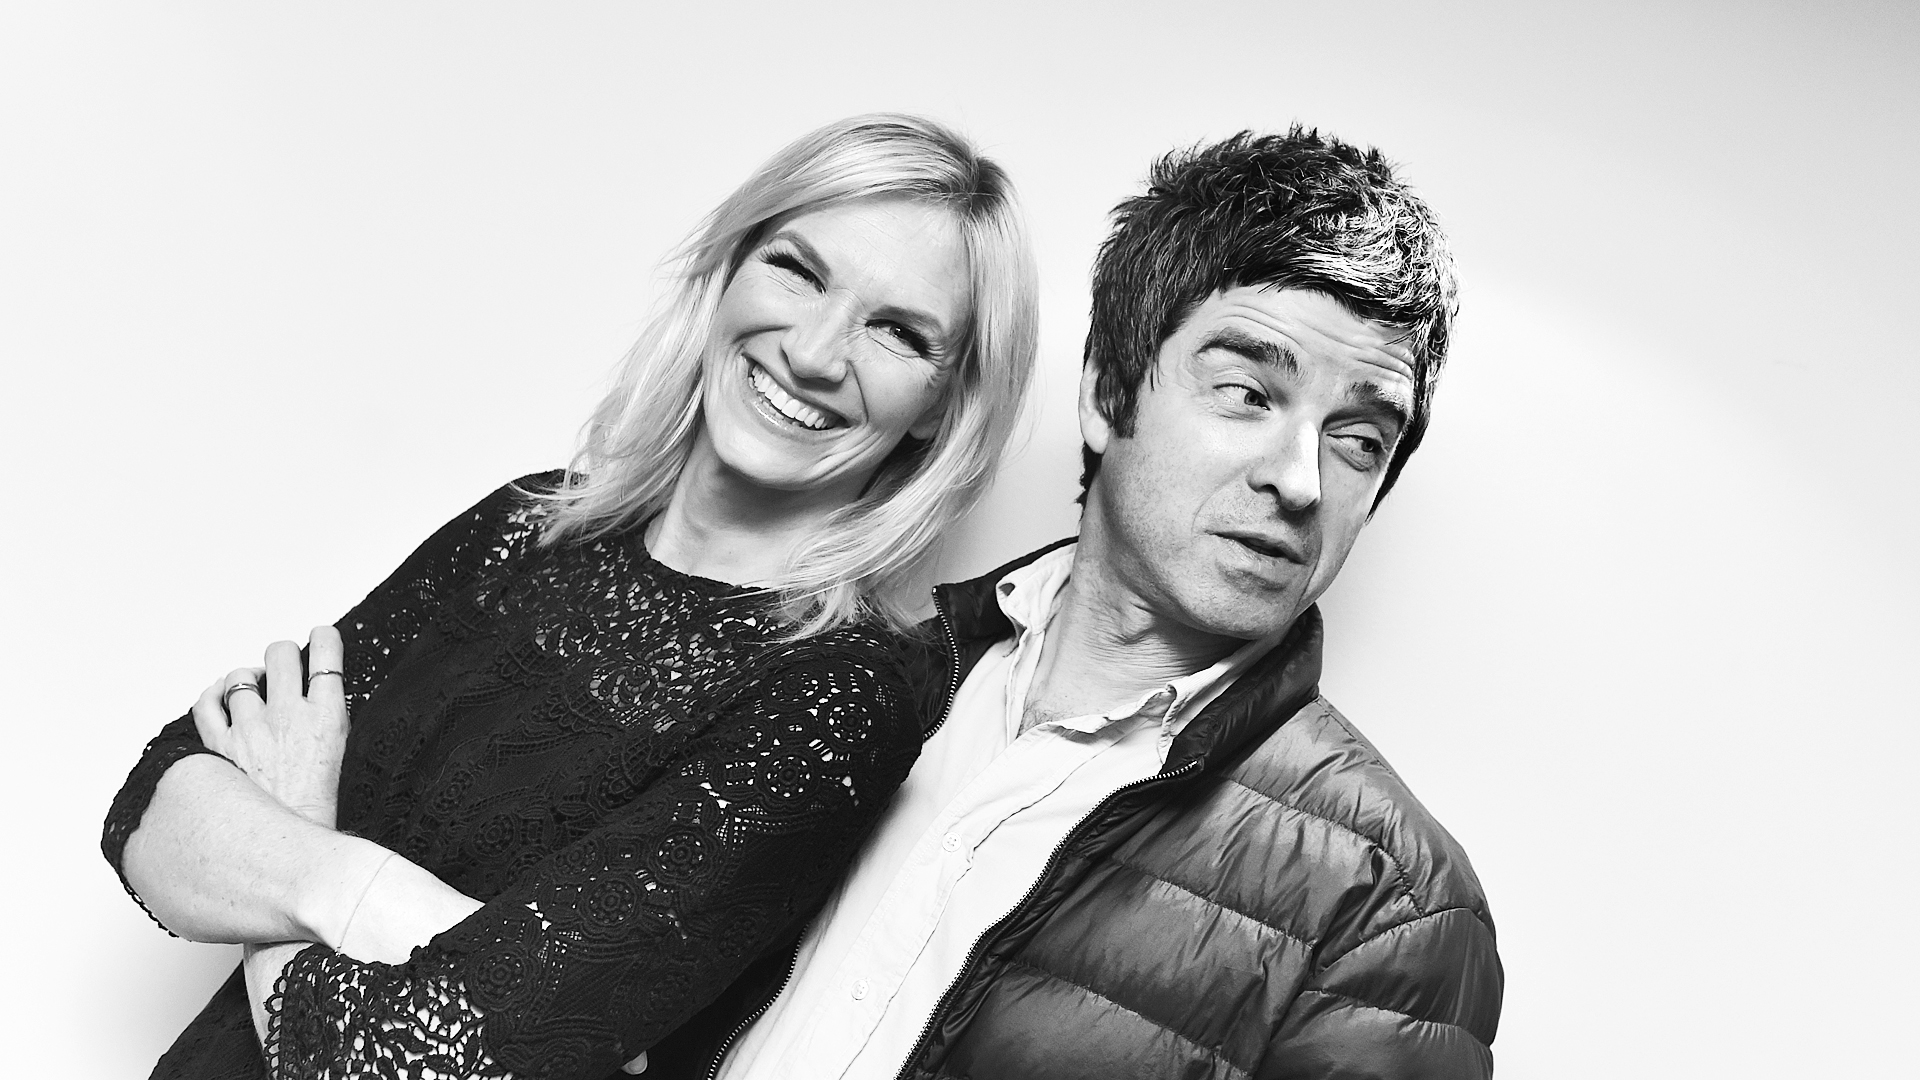 Jo Whiley and Noel Gallagher for 'BBC Radio 2 In Concert', 2015. Loftus Media Photographer: Sarah Jeynes. © BBC.